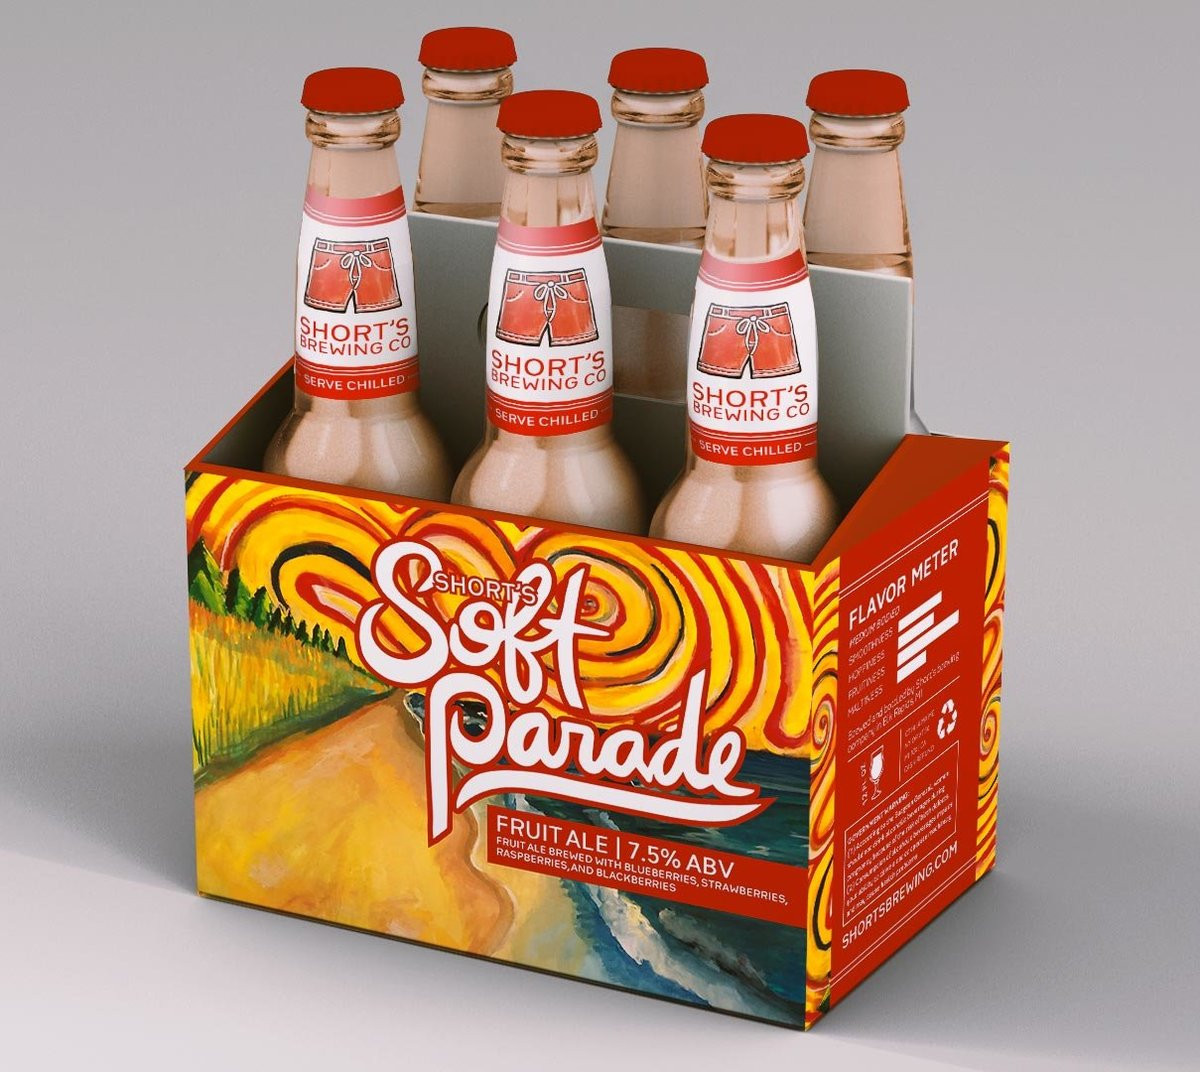 SoftParade_Mockup_6Pack